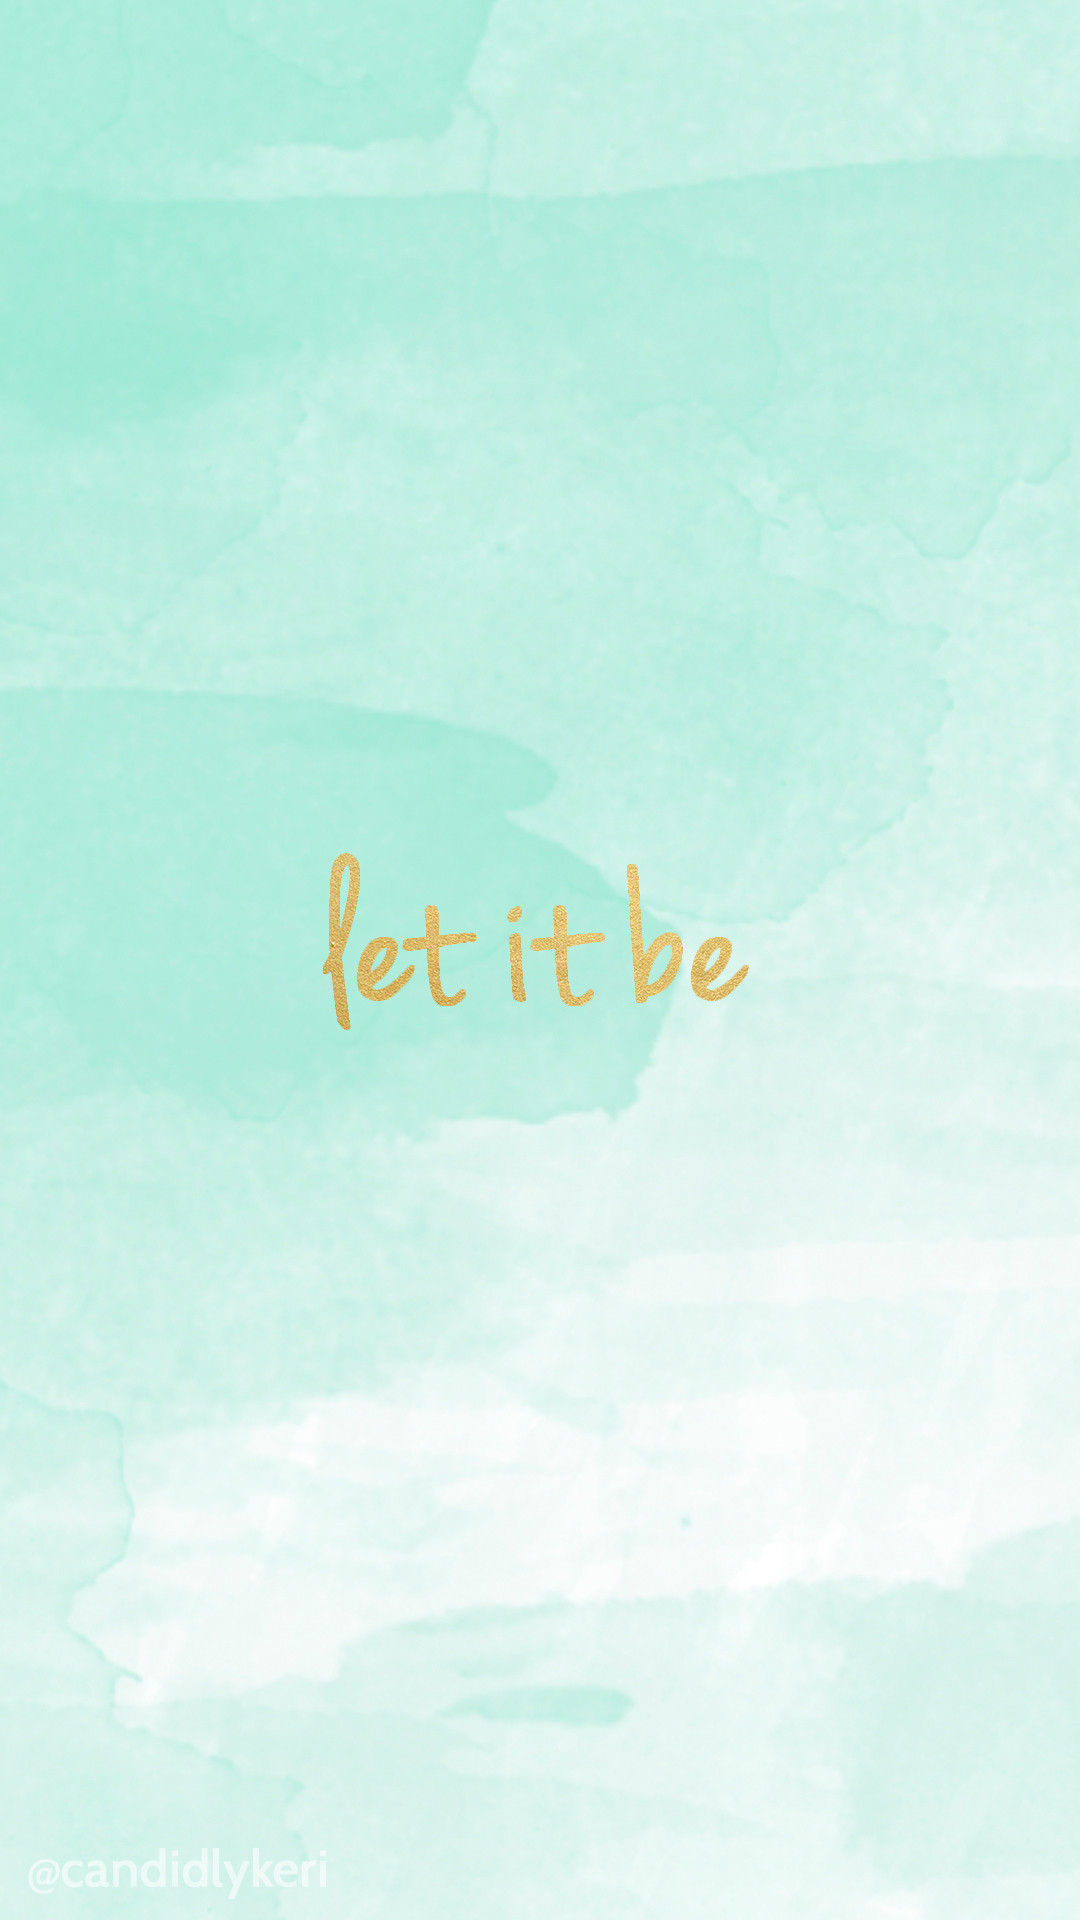 1080x1920 Let it be gold lettering with blue watercolor background wallpaper you can  download for free on. Watercolor Wallpaper IphoneWallpaper Iphone CuteImac  ...